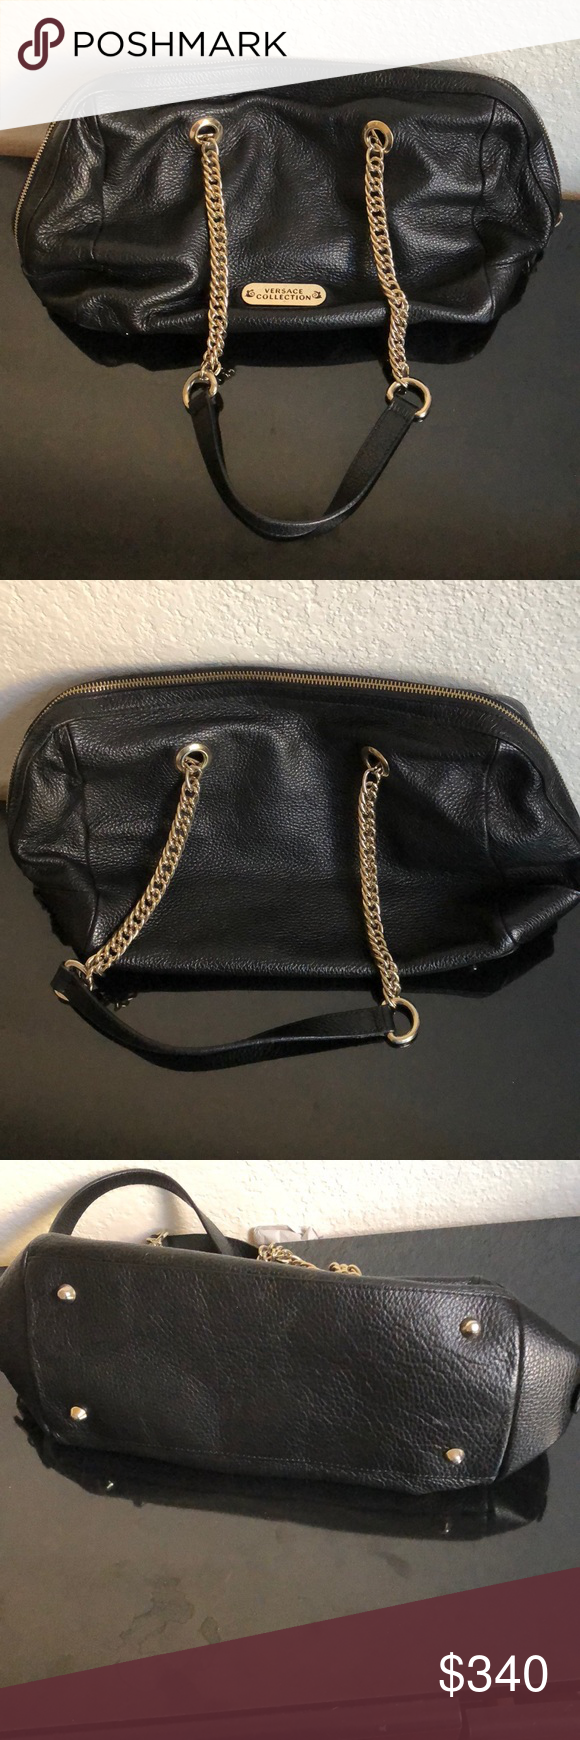 e8b93ef9a8 Like new authentic Versace collection purse Like new authentic Versace  Collection purse. No flaw except for a few tiny ink stains in the inside.